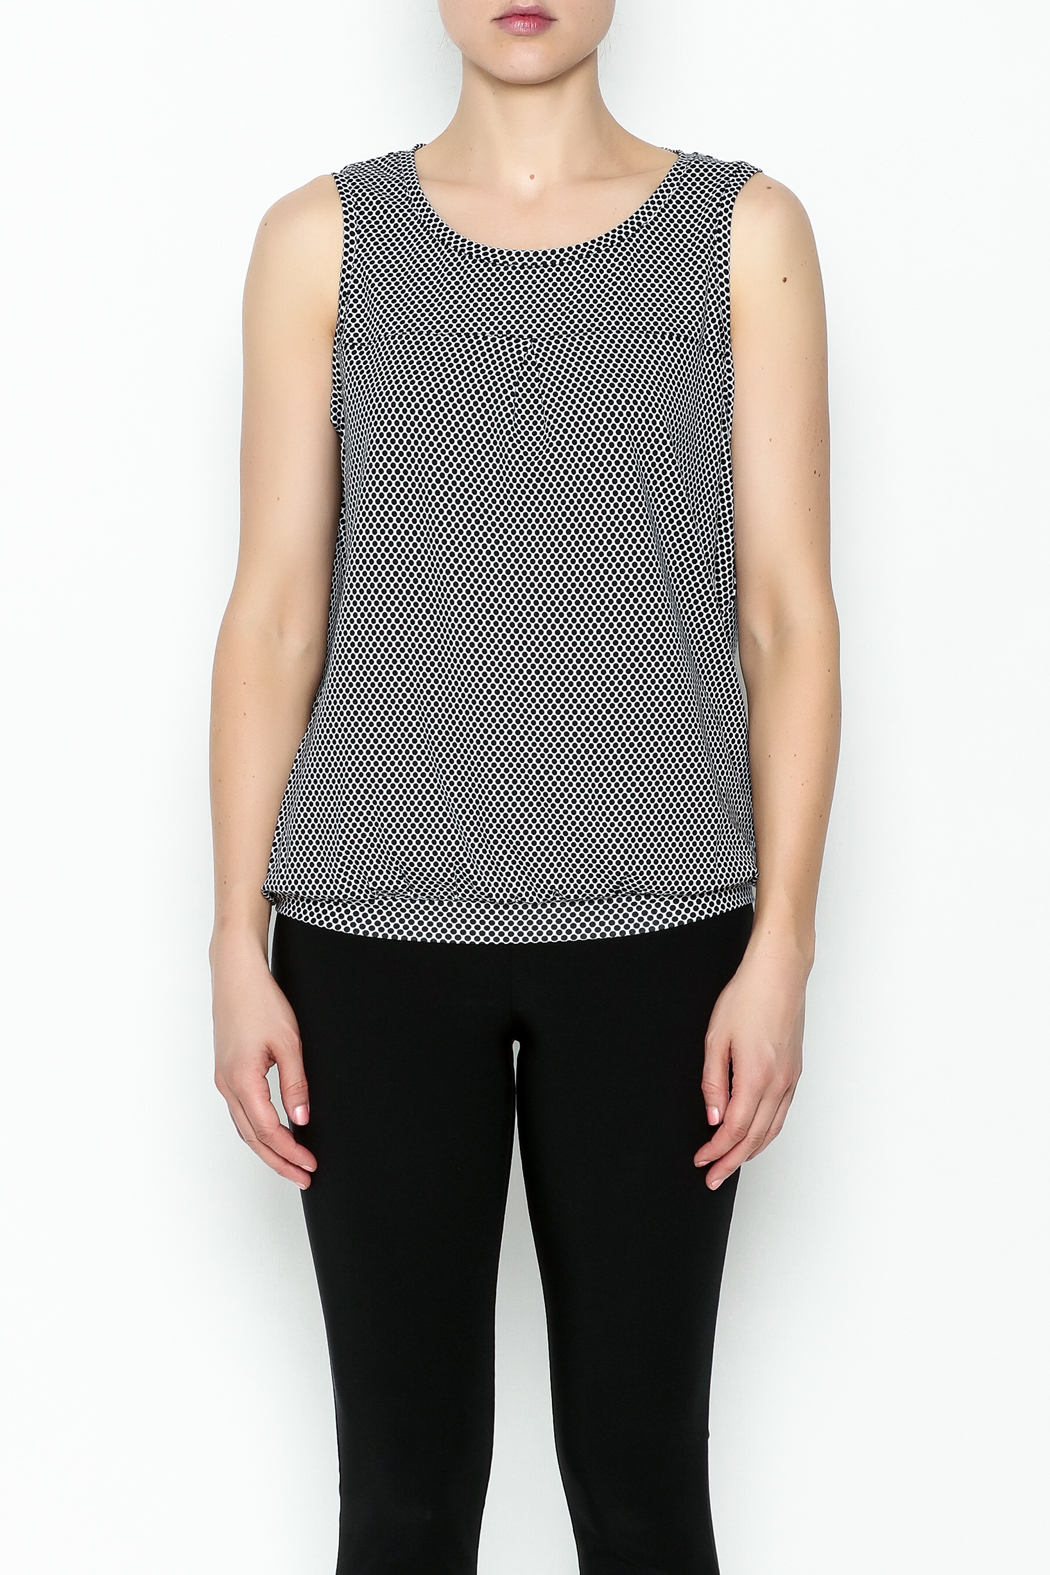 Yest Sleeveless Banded Top - Front Full Image